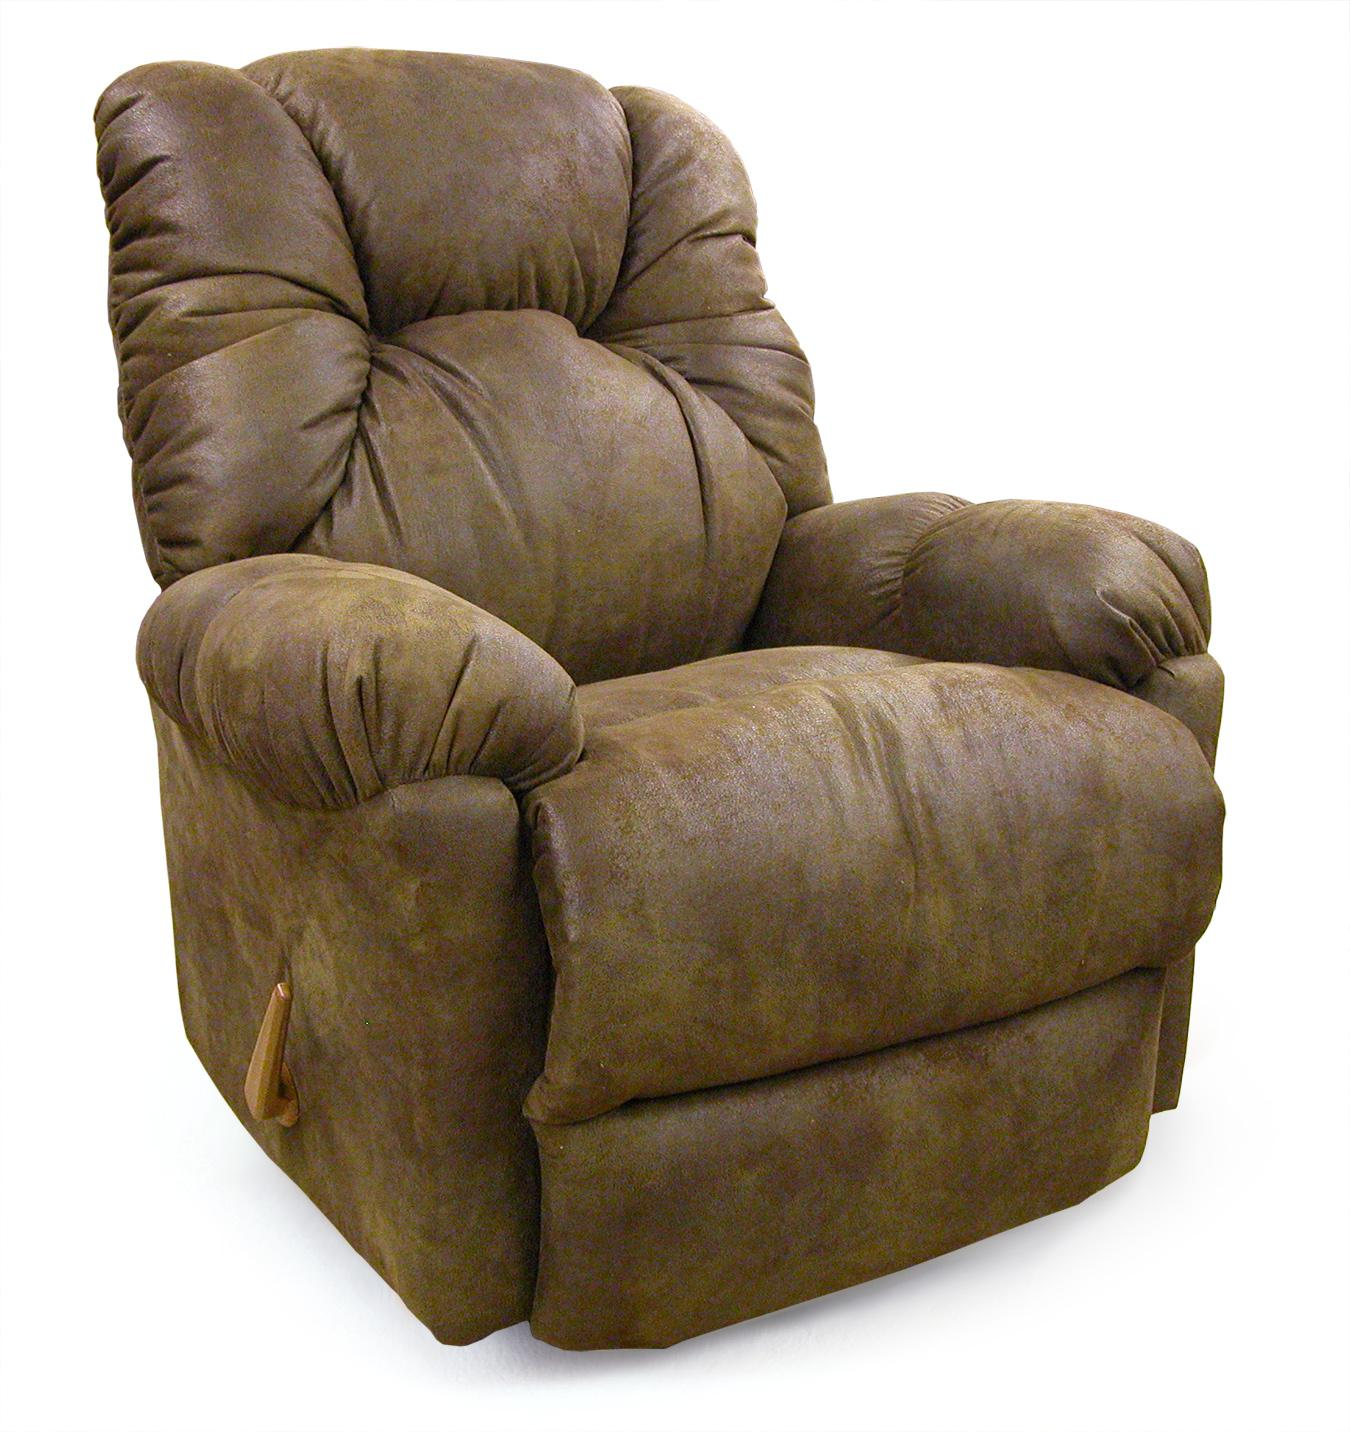 swivel rocking recliner chair shower chairs for handicap best home furnishings recliners medium romulus